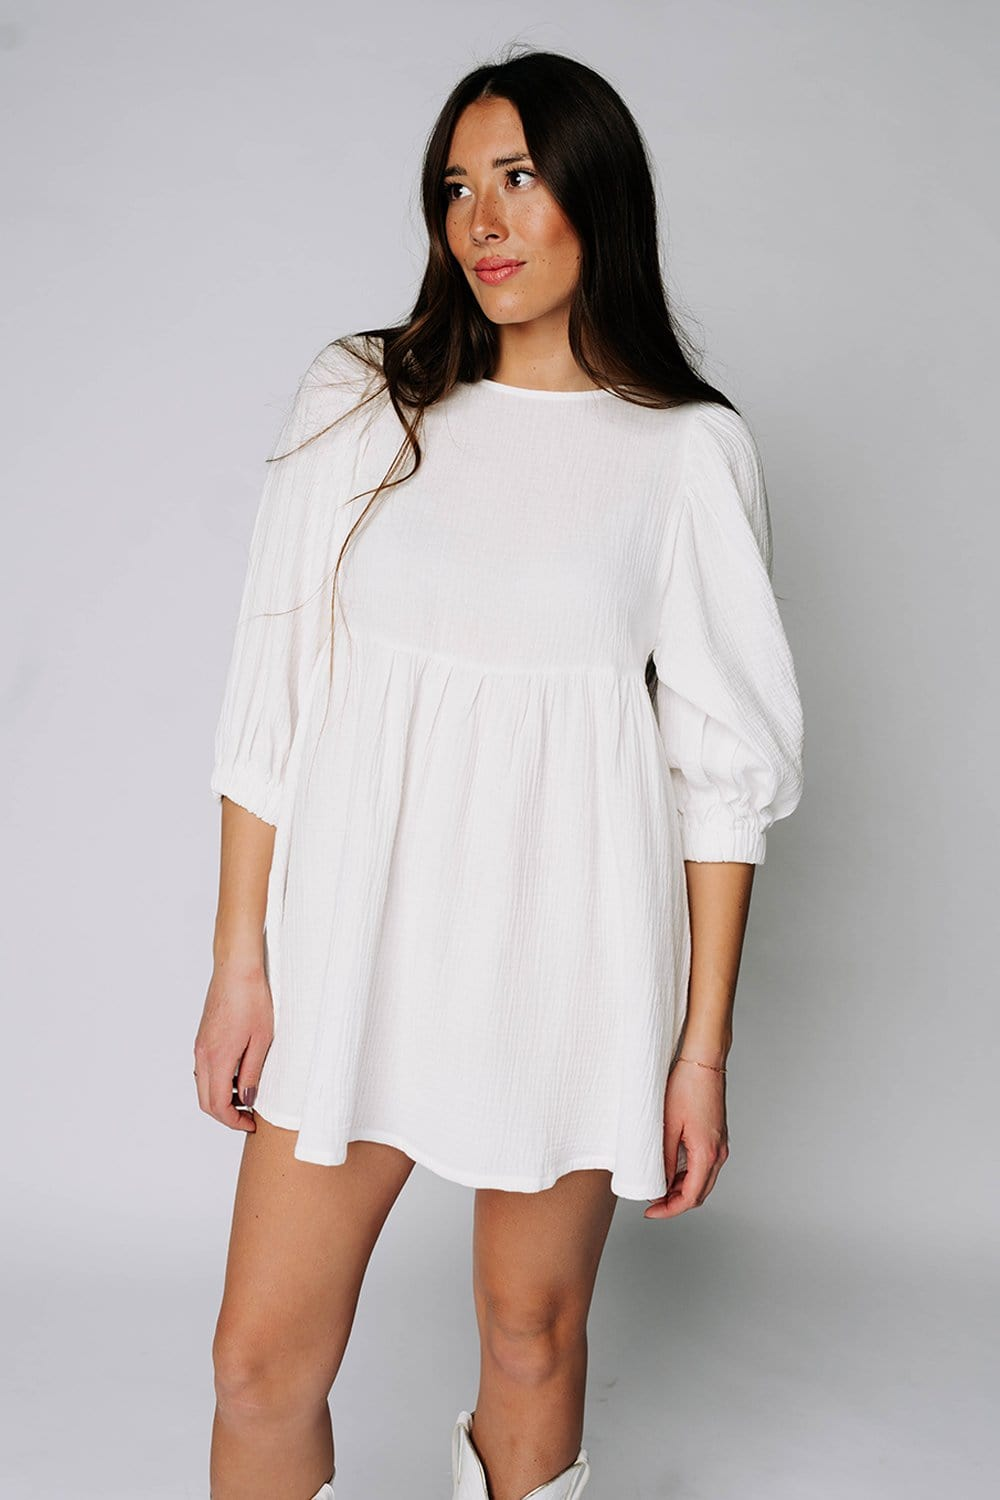 The White Horse Mini Dress